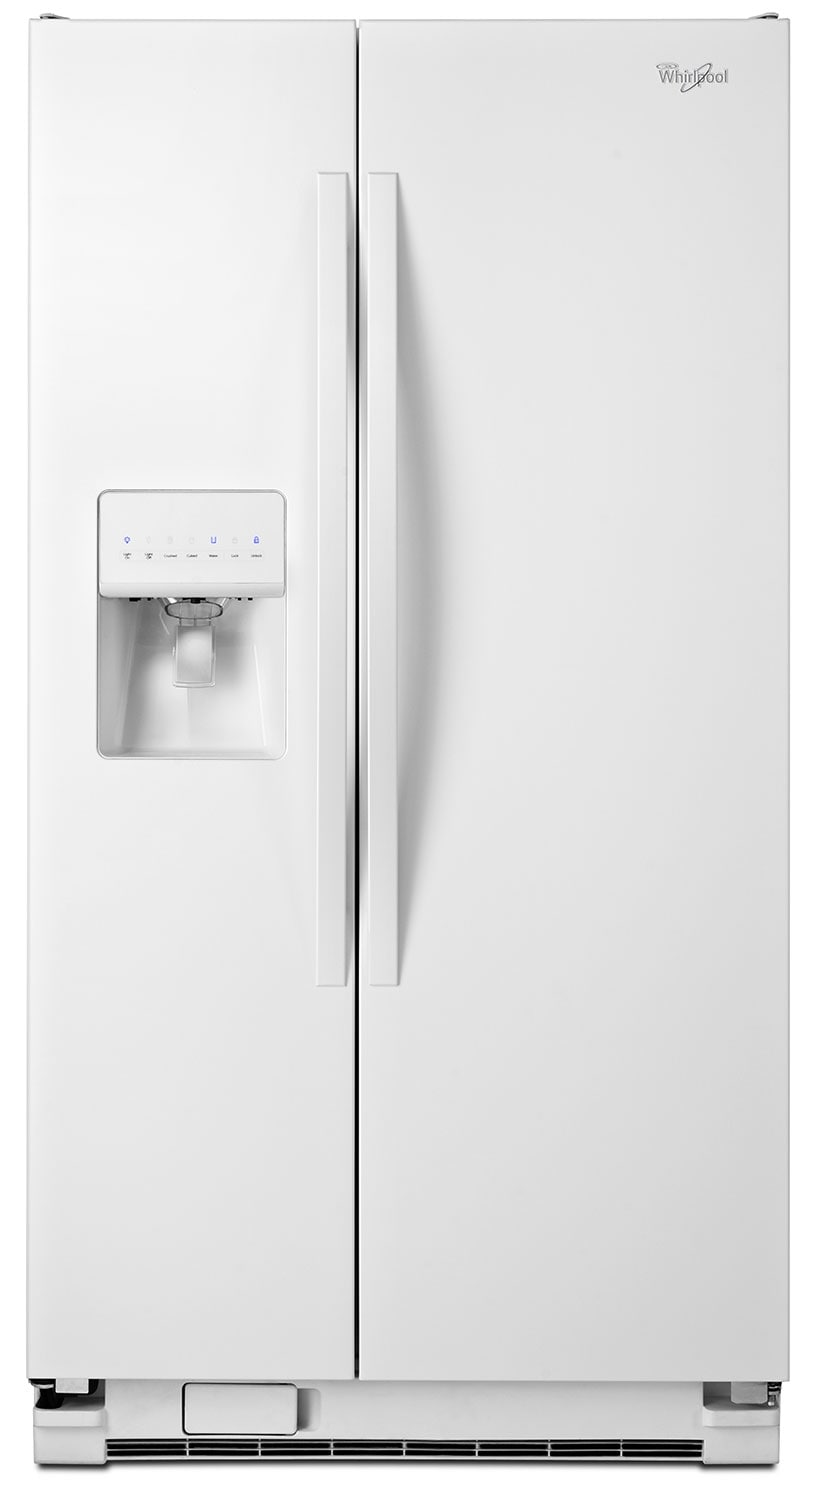 Whirlpool White Side-by-Side Refrigerator (24.4 Cu. Ft.) - WRS325FDAW